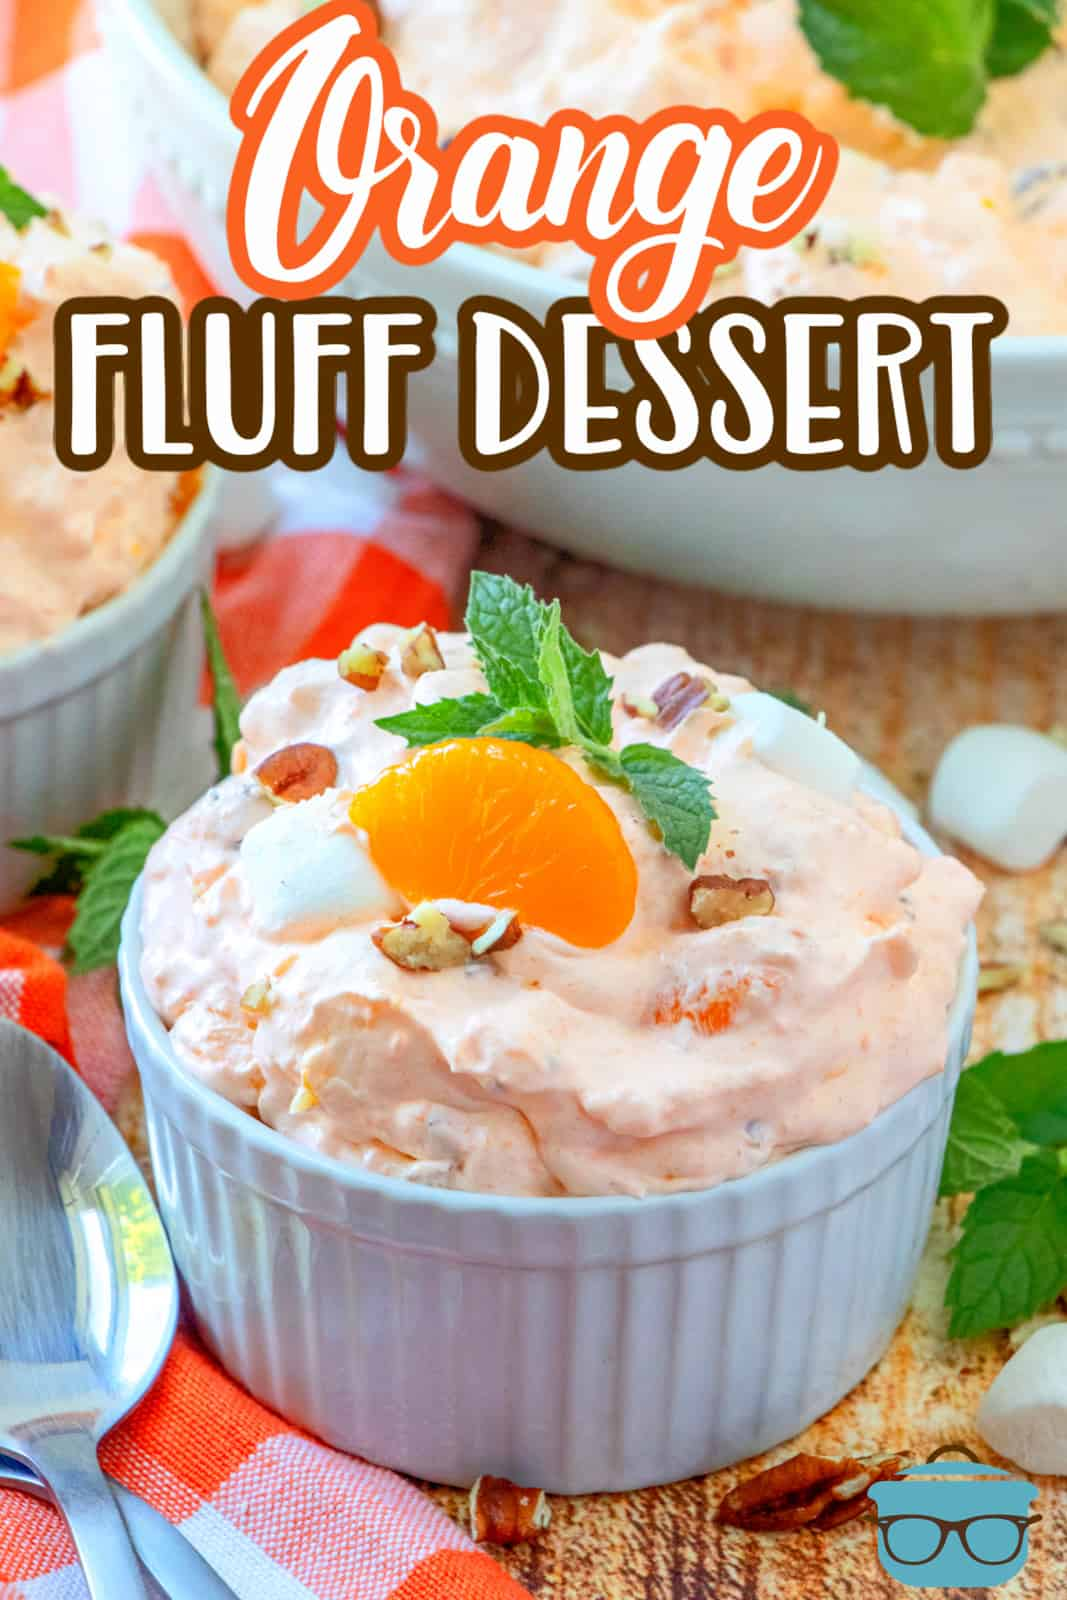 Orange Fluff Dessert recipe from The Country Cook. Serving shown in a small white ramekin.